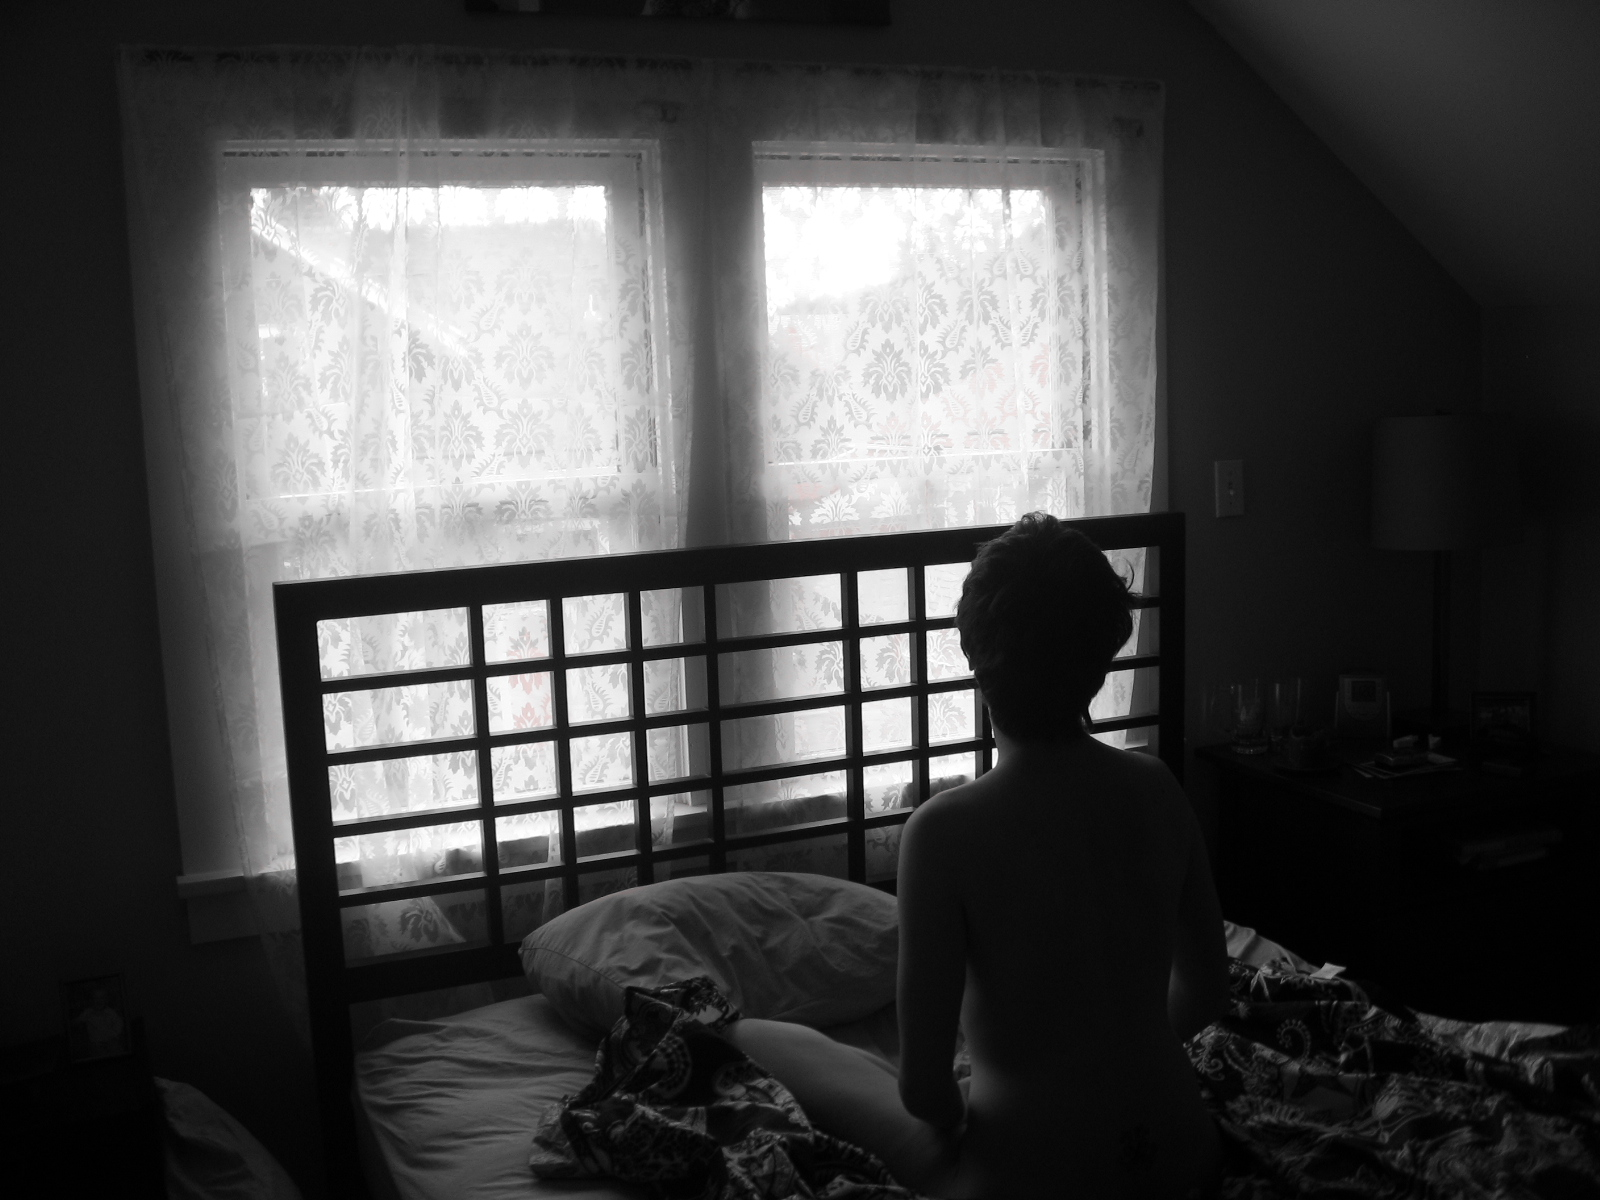 Silhouette of someone sitting on a bed by a window